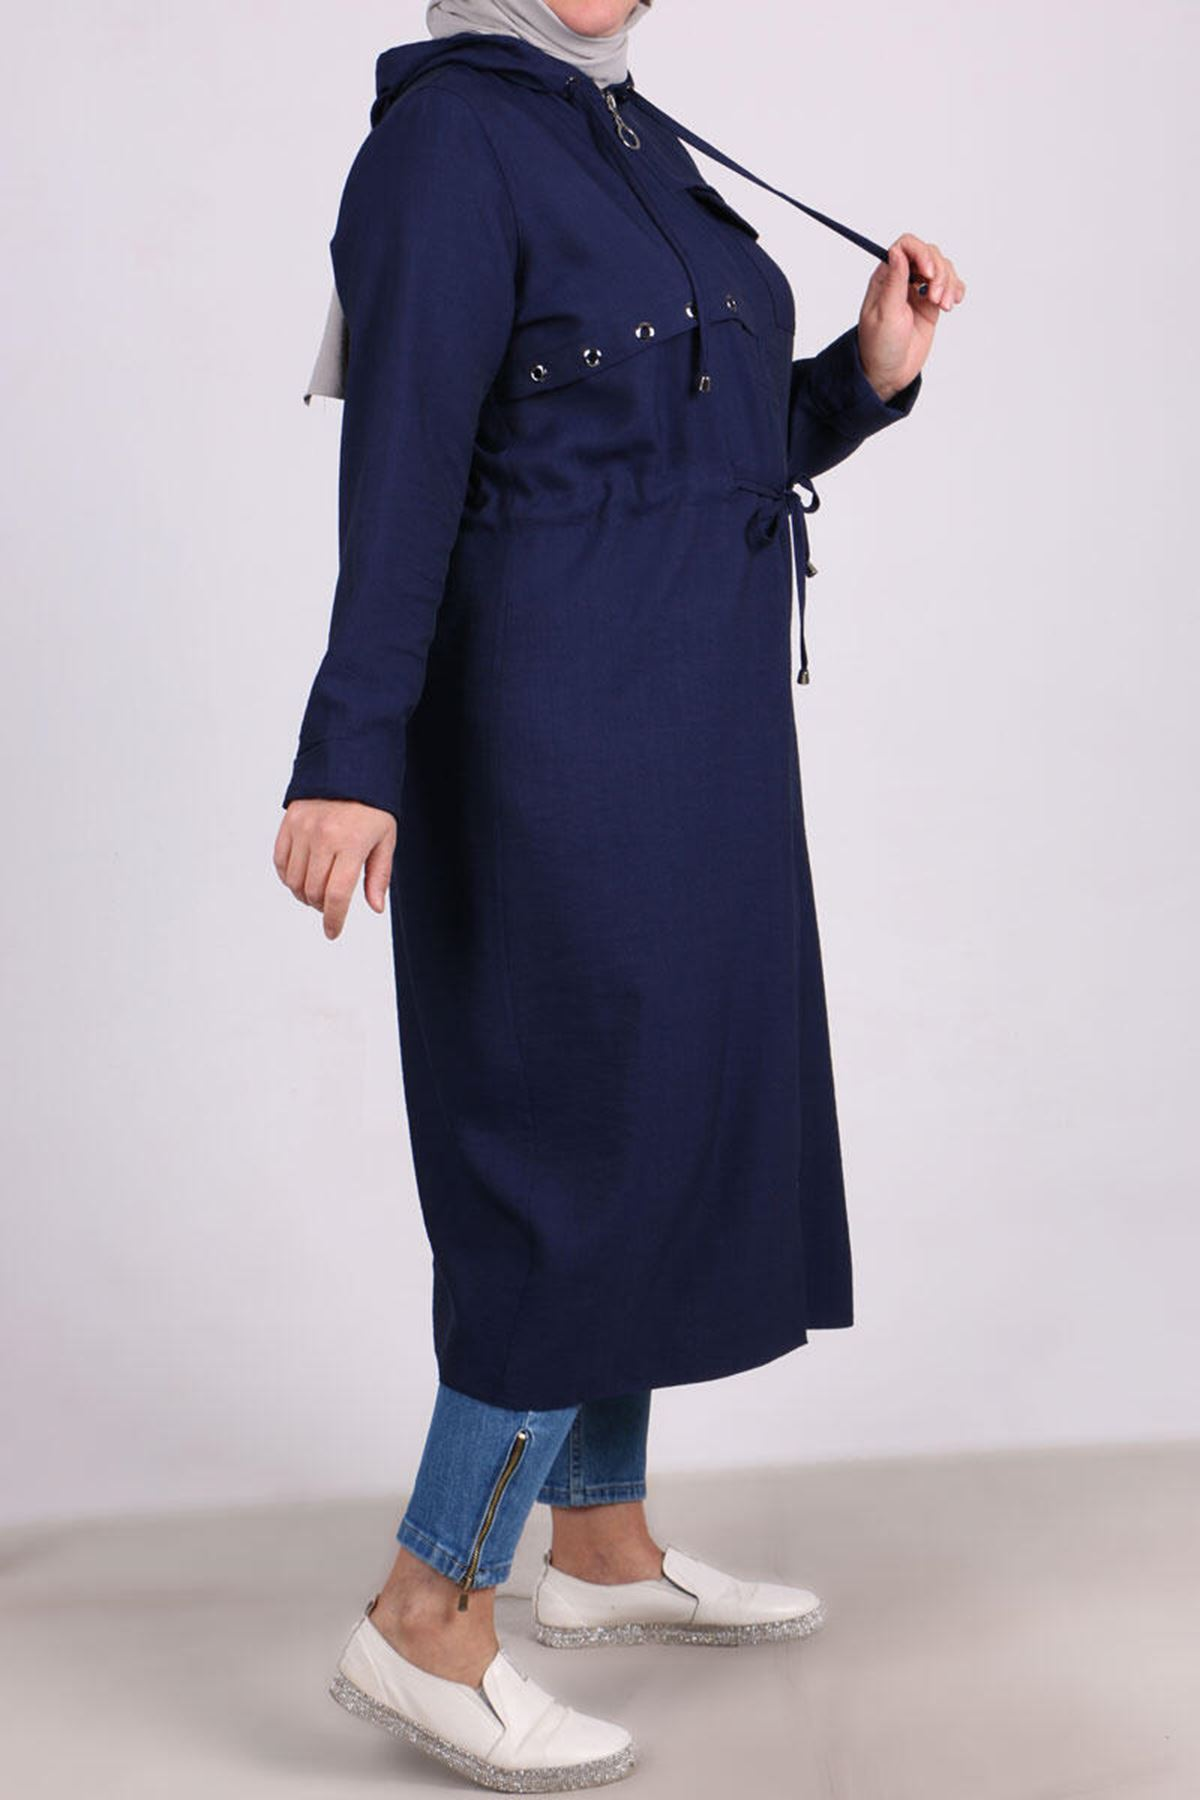 3143 Plus Size Hooded Rayon Lİnen Coat -Navy  Blue